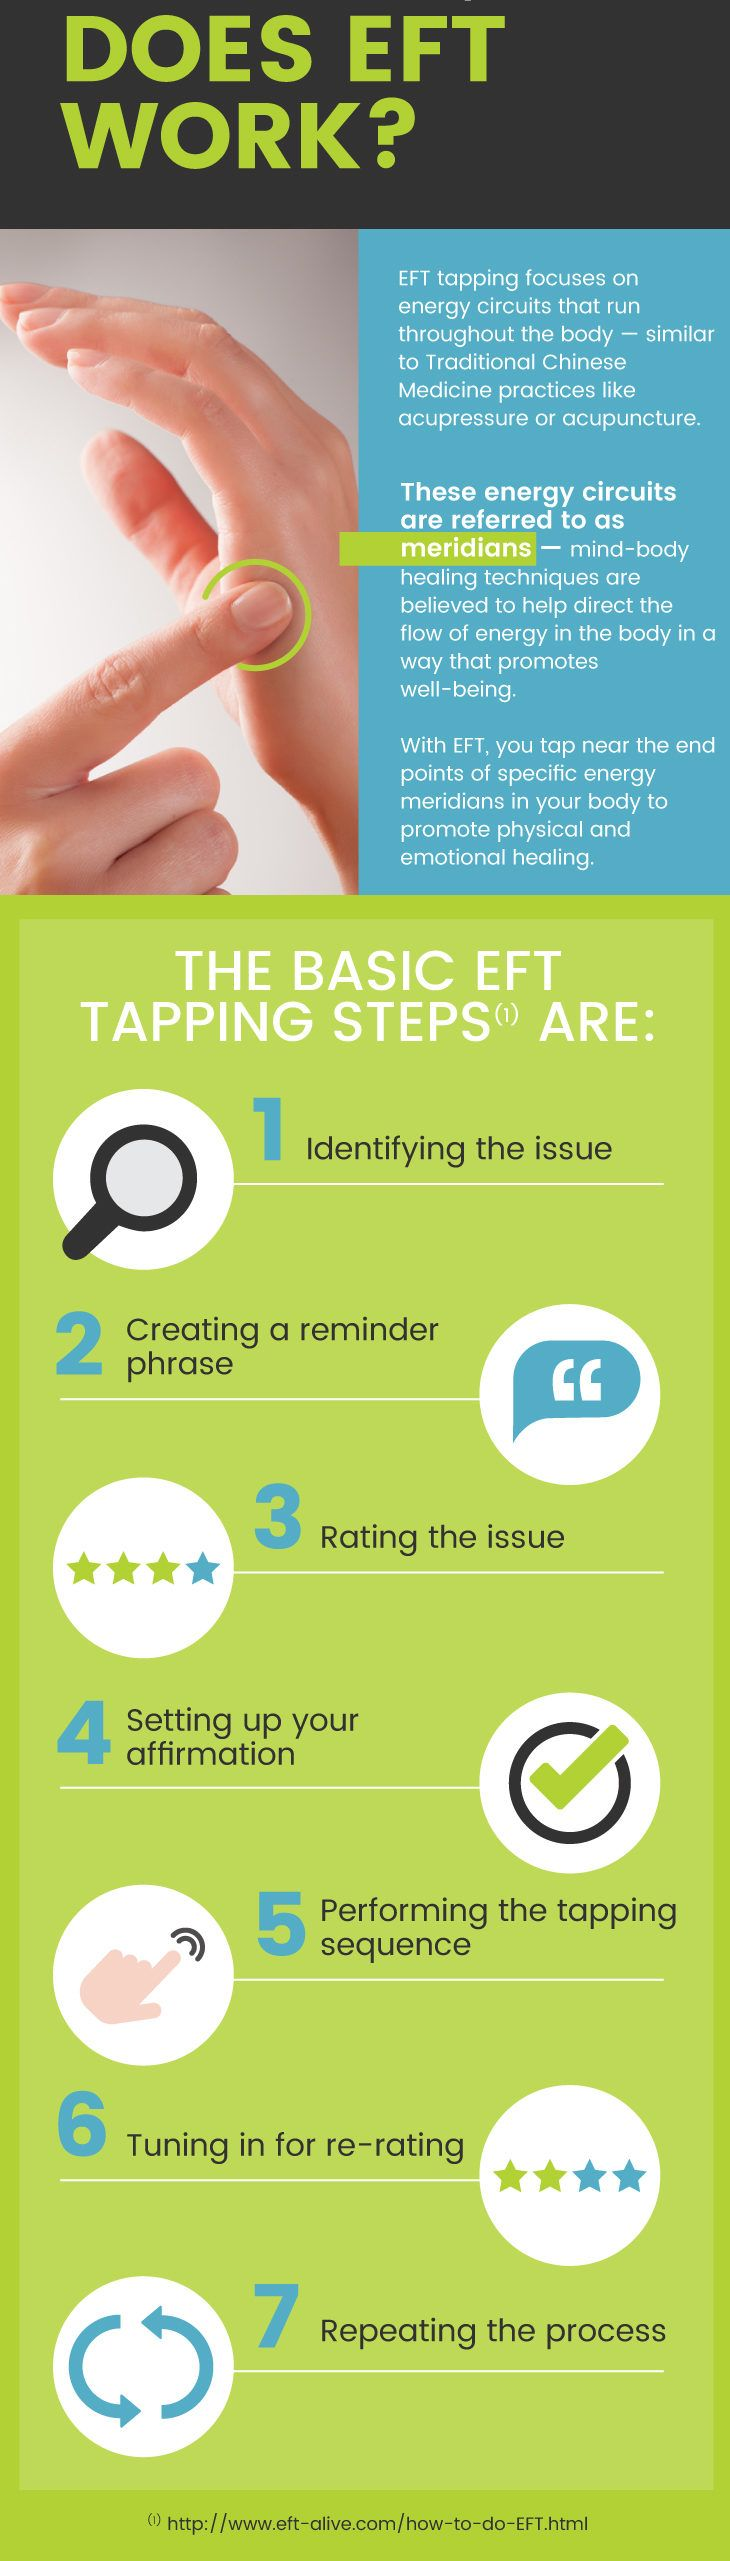 Photo of Emotional Freedom Technique: What Is EFT Tapping? – Dr. Axe